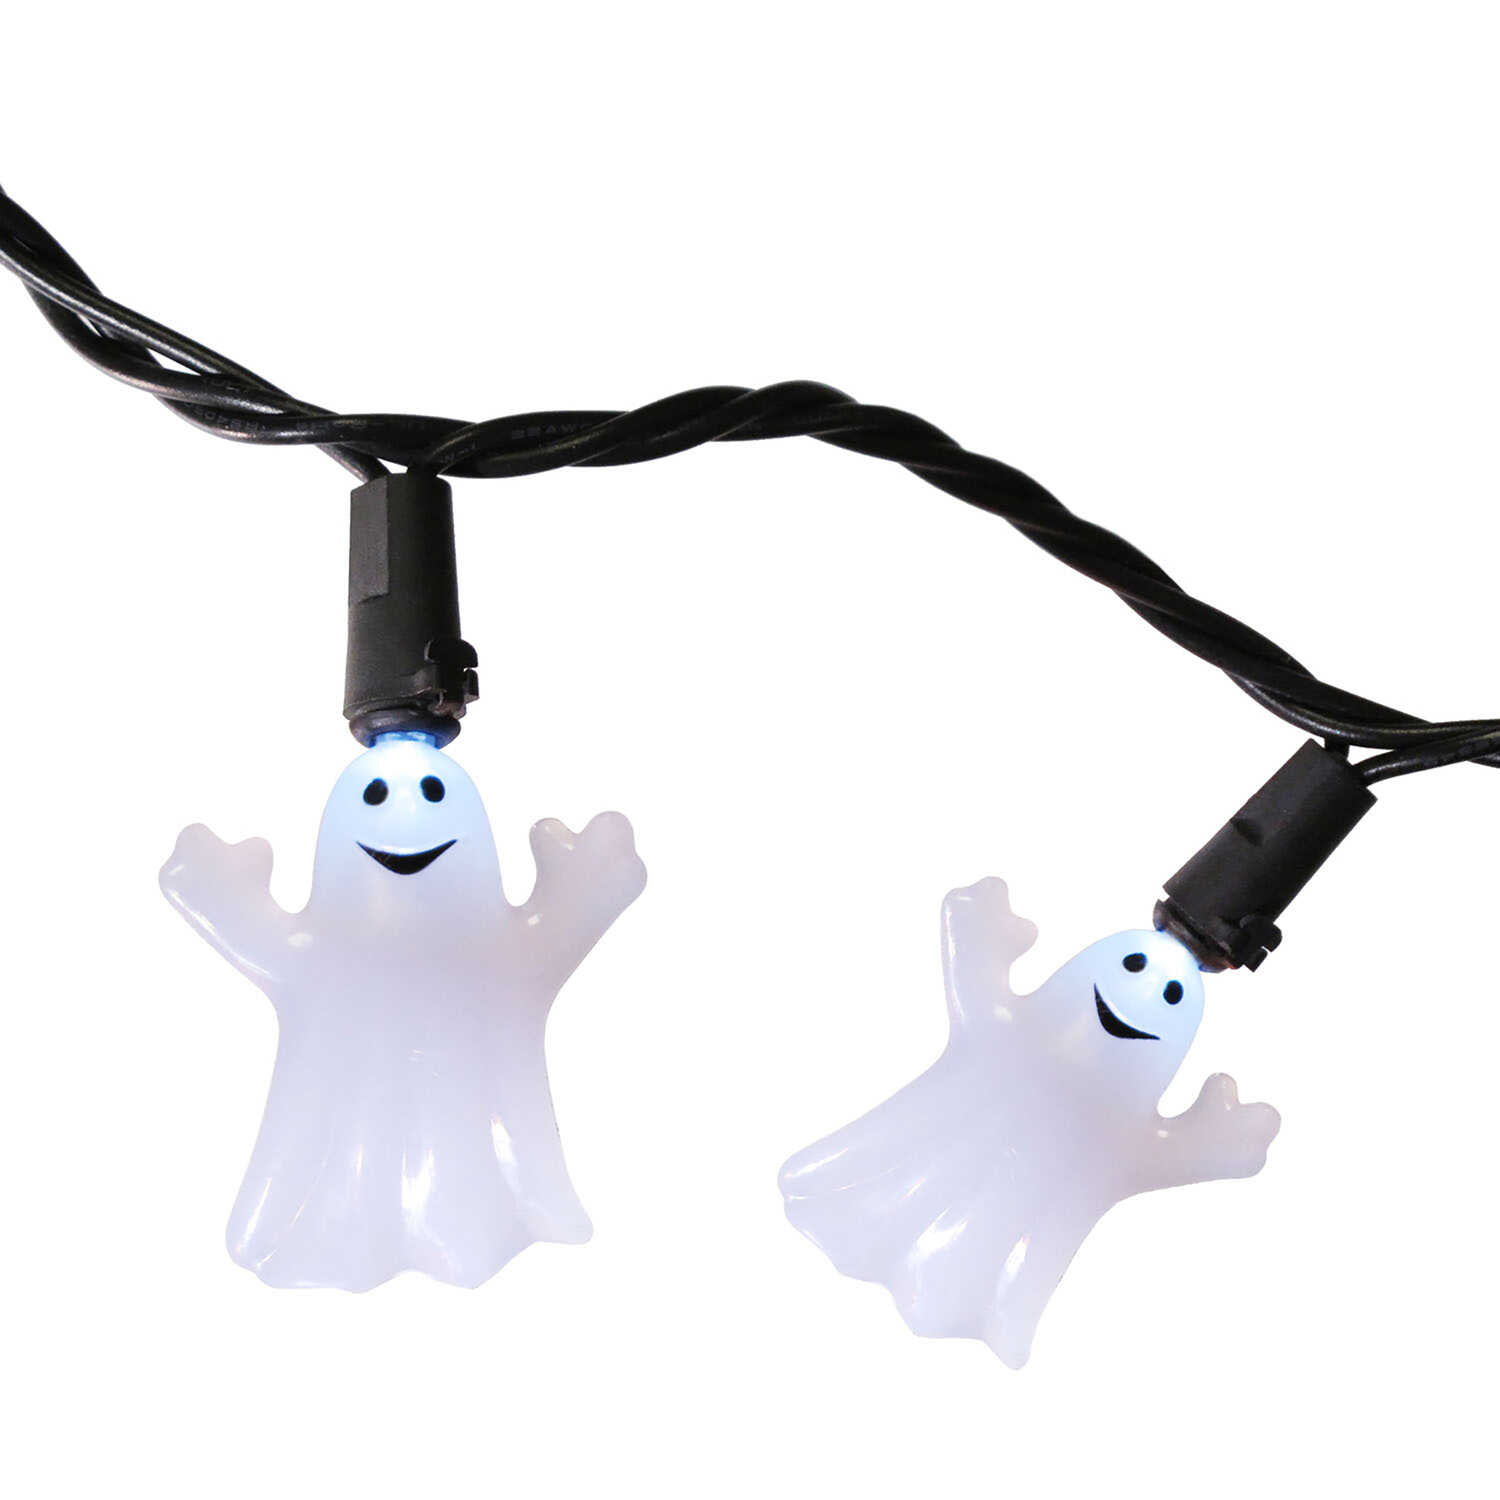 Celebrations  20 LED Ghost  Lighted Halloween Lights  1.5 in. H x 8.66 ft. W x 8.6 ft. L 1 pk